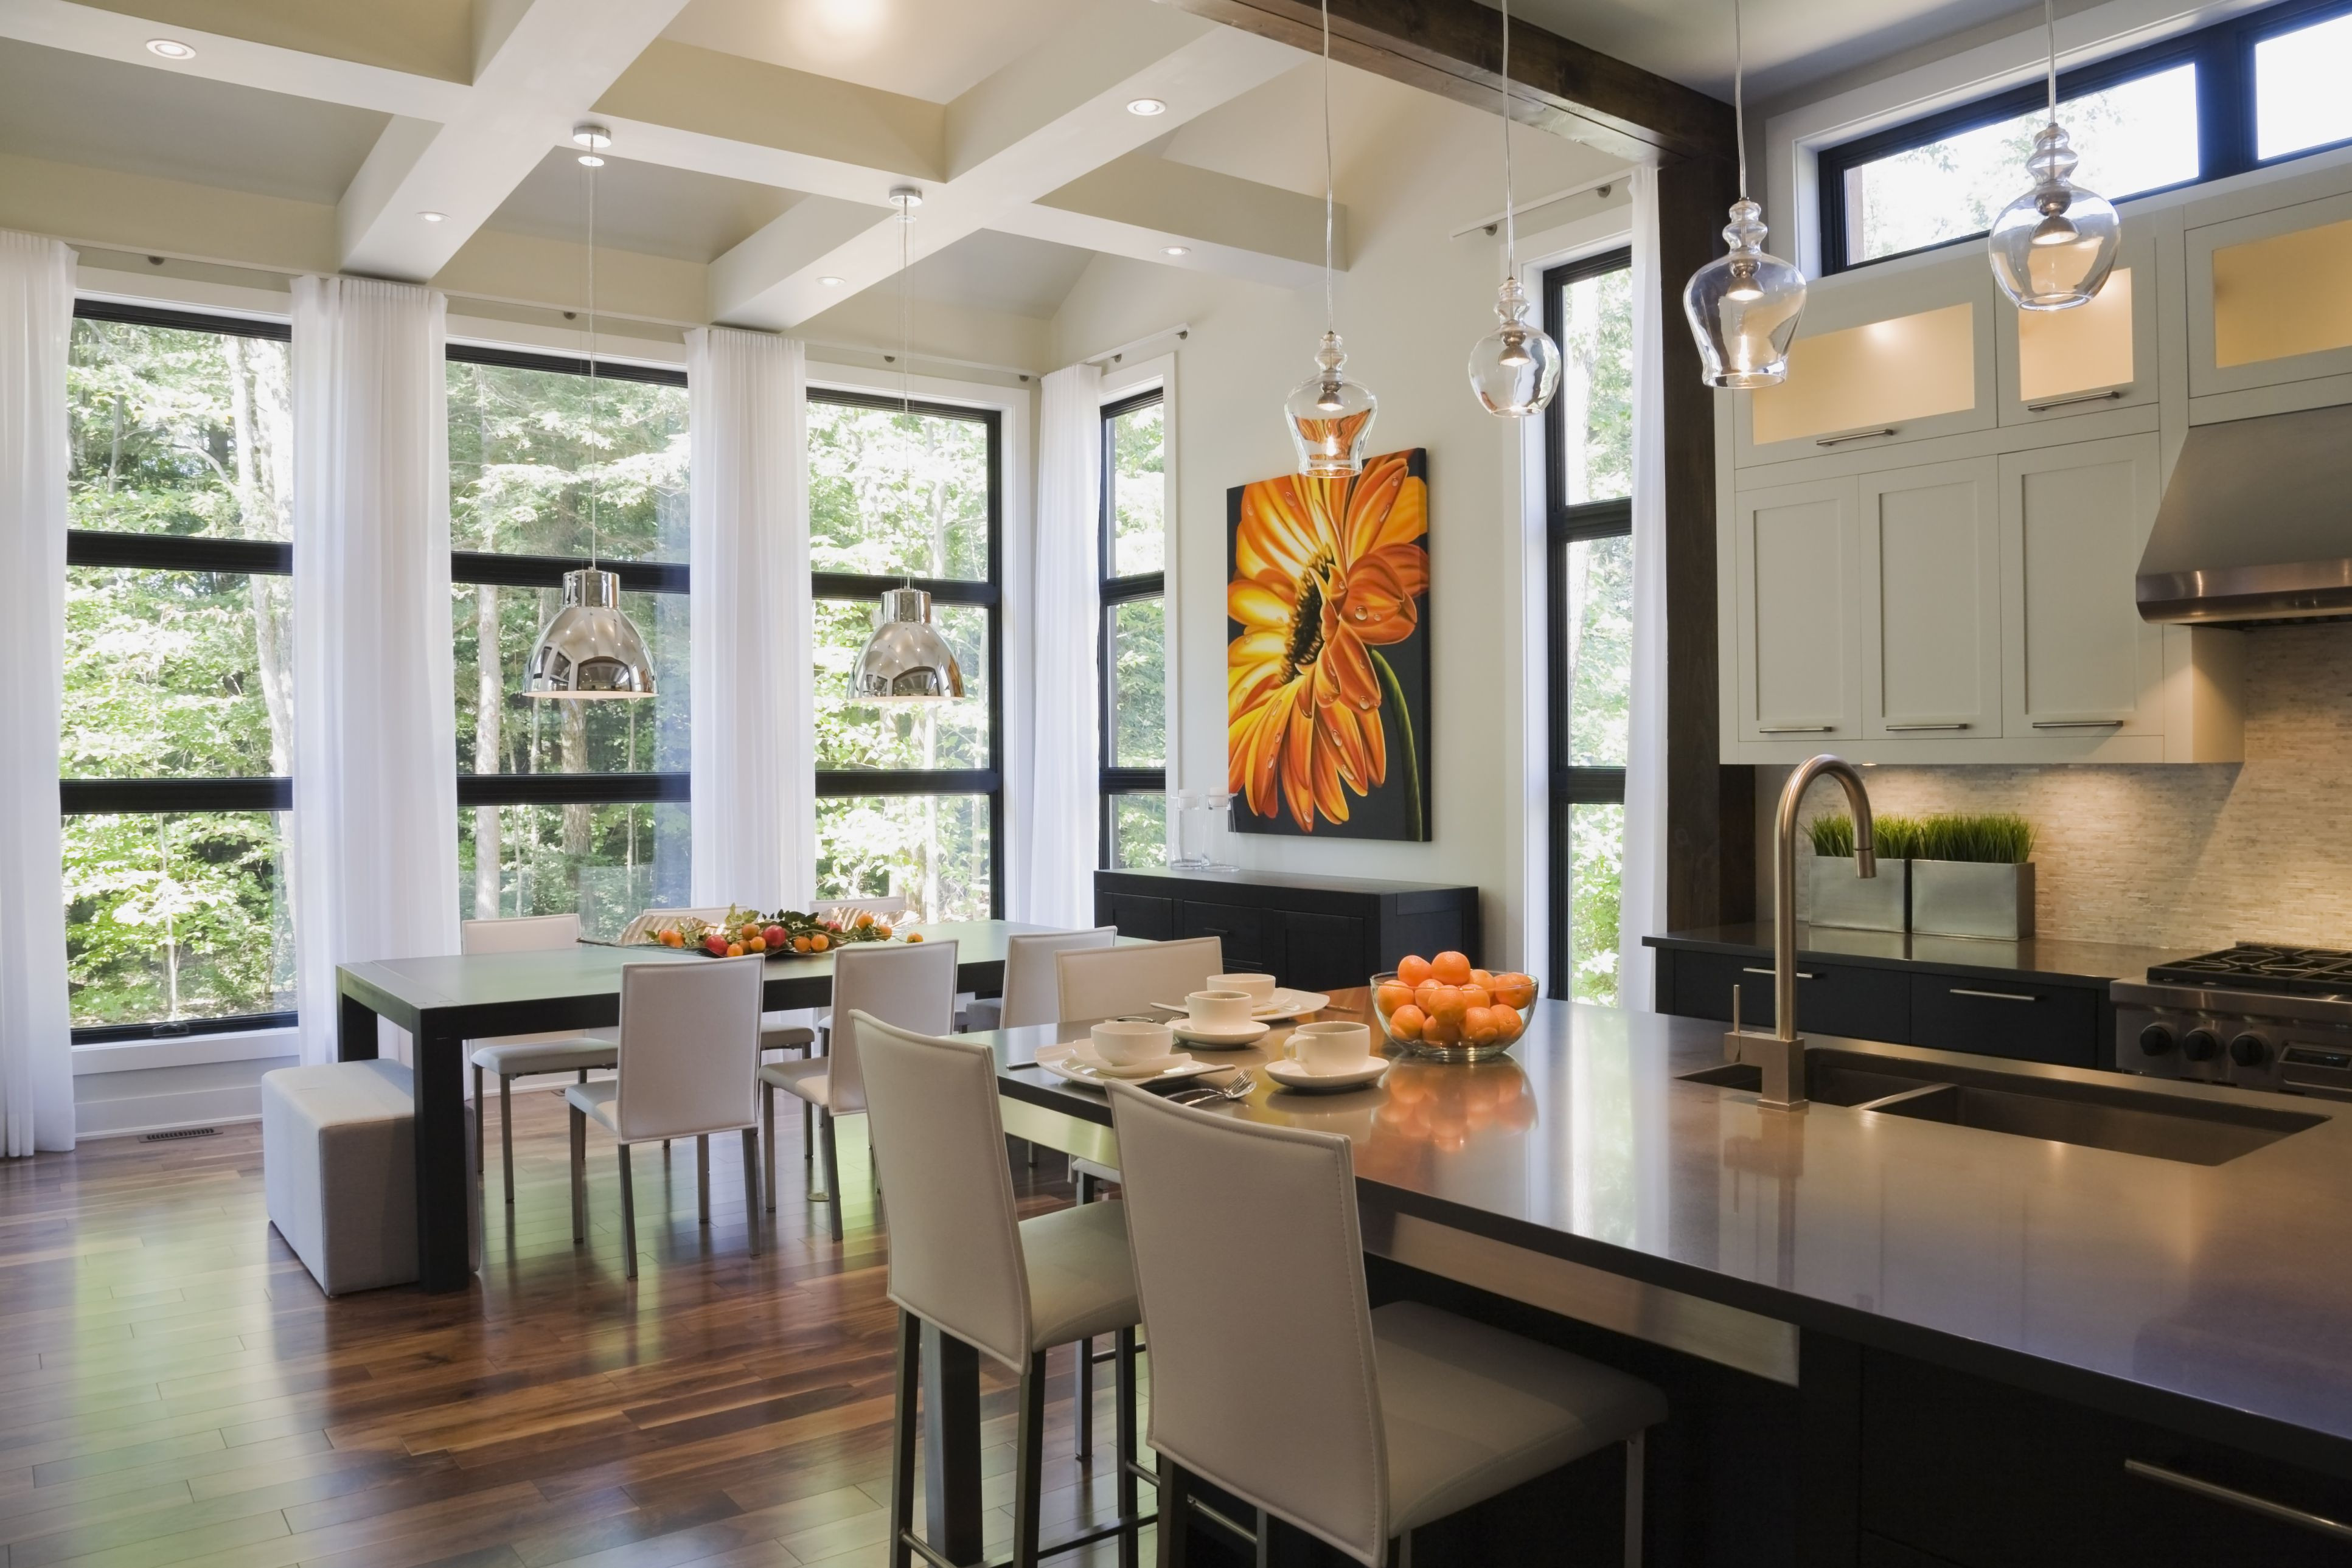 cost to refinish hardwood floors atlanta of the open floor plan history pros and cons intended for upscale kitchen with wood floor and open beam ceiling 519512485 perry mastrovito 56a4a16a3df78cf772835372